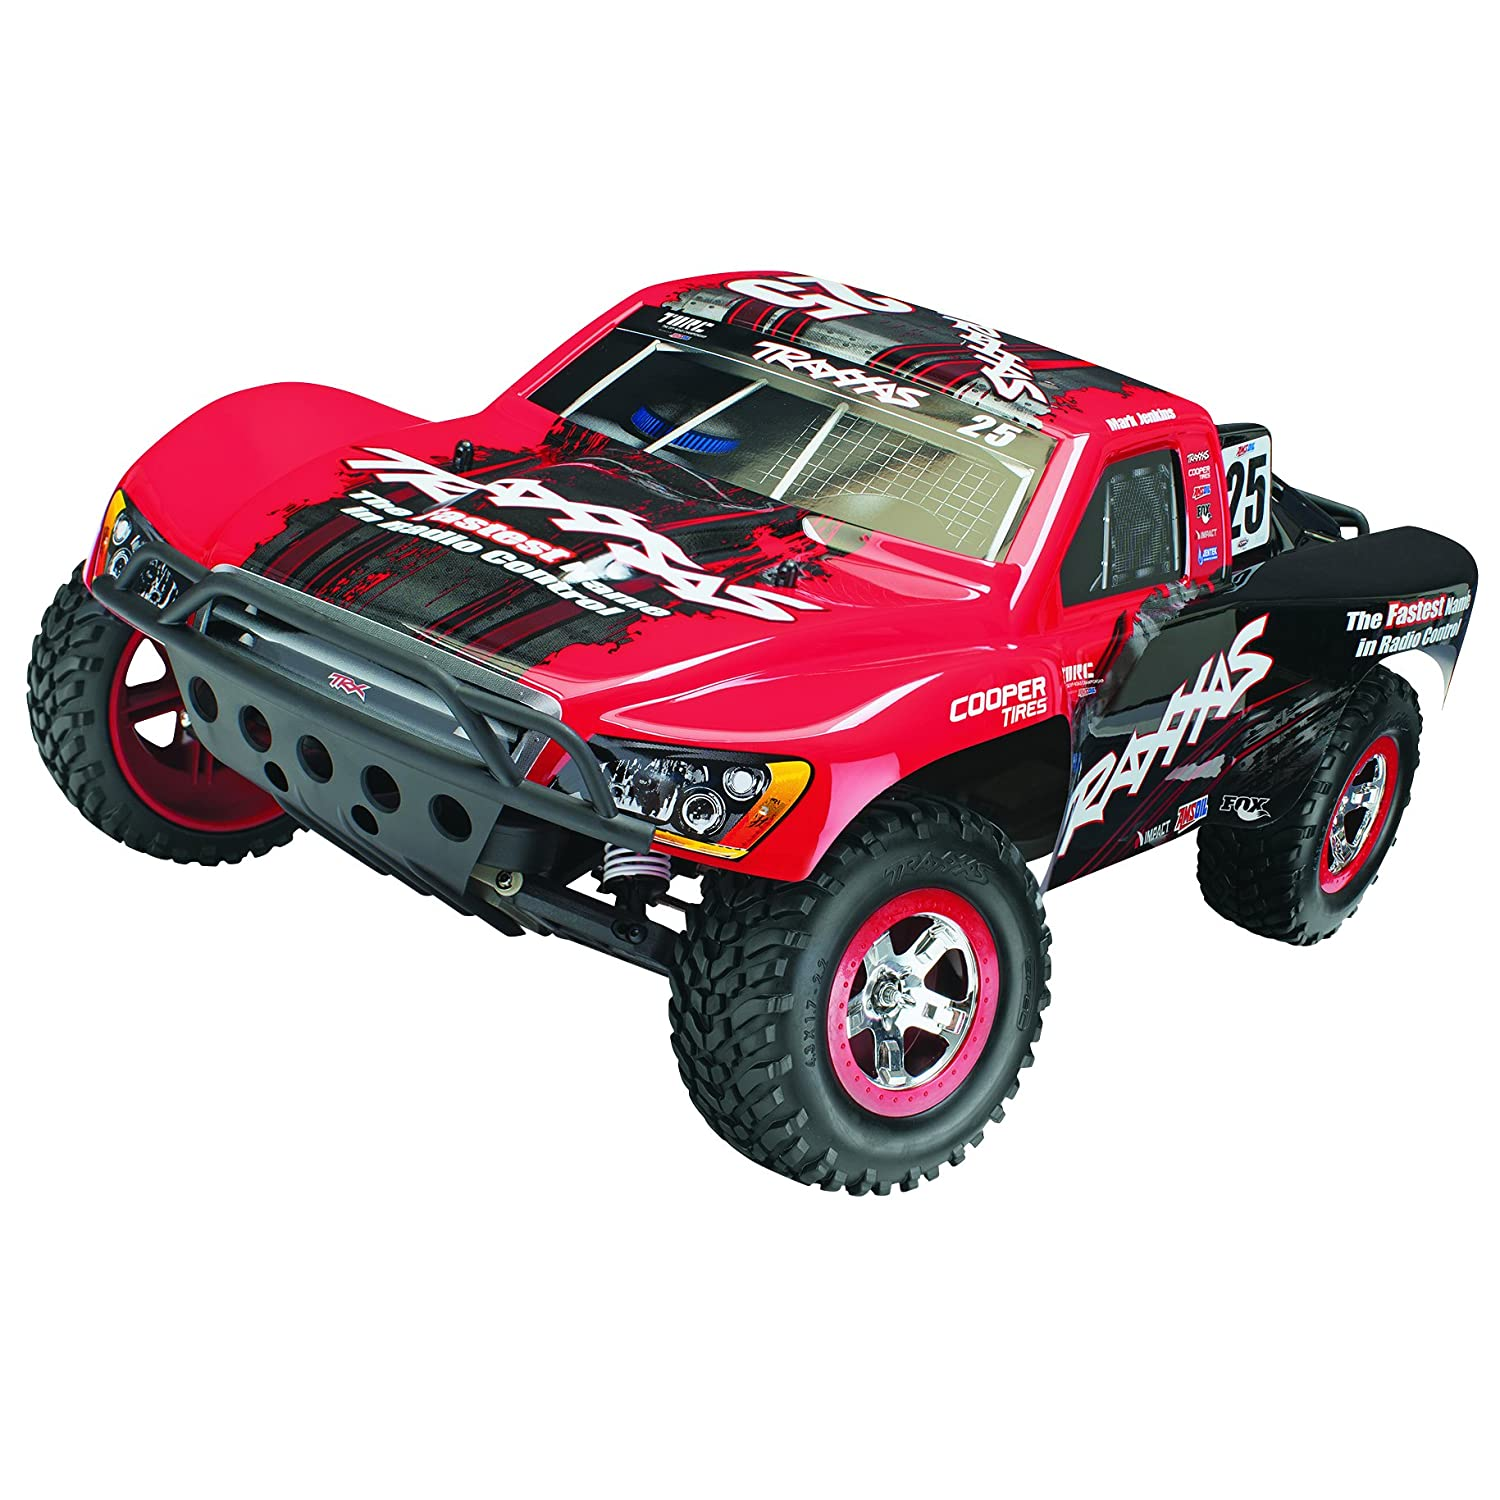 Amazon Traxxas 21 1 10 Slash 2WD VXL RTR with Board Audio Colors May Vary Toys & Games